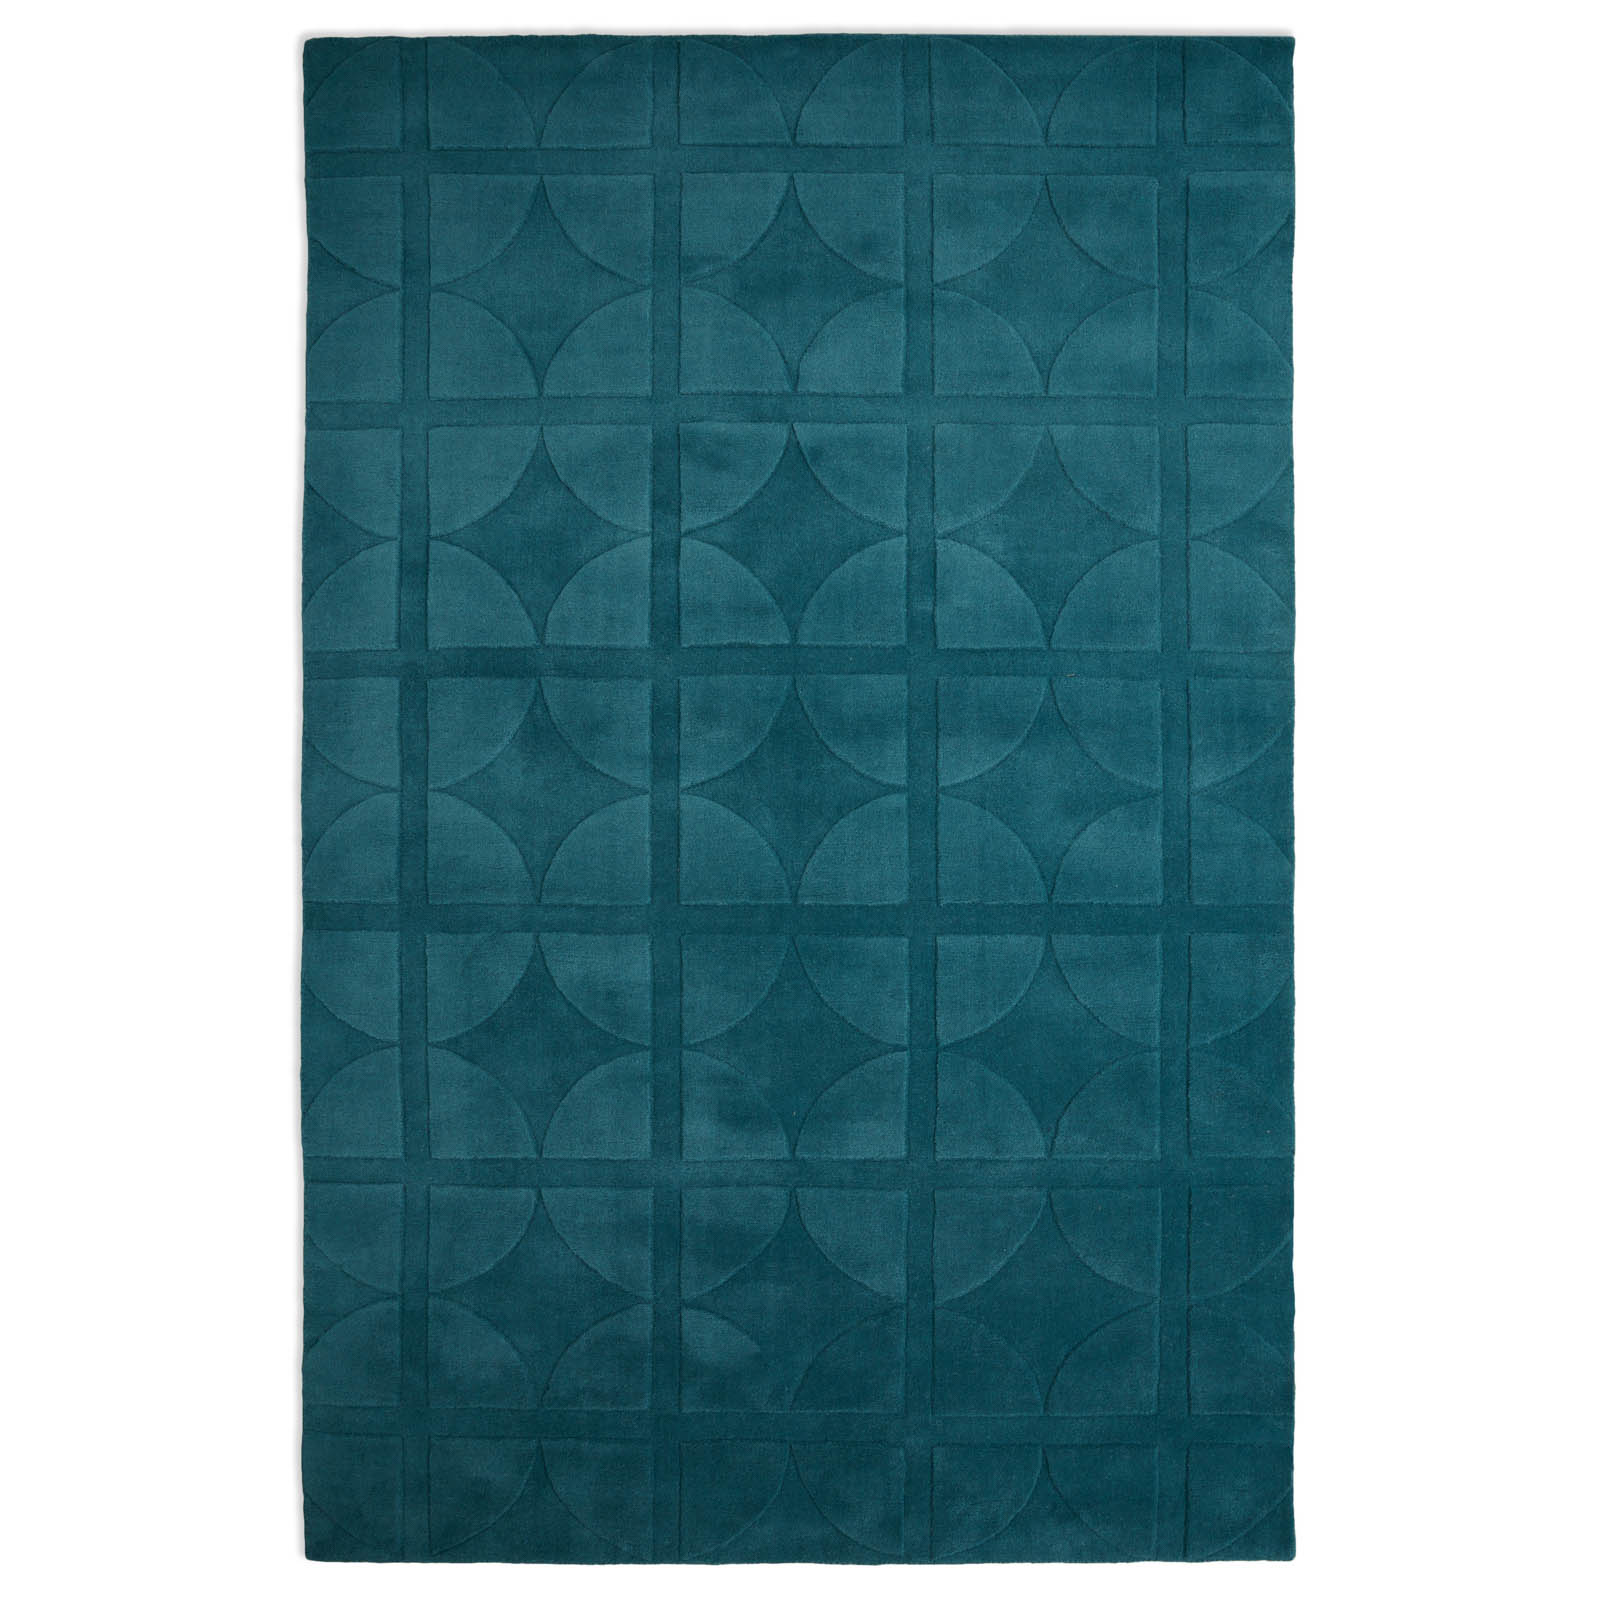 Universal Rugs UNI05 in Teal